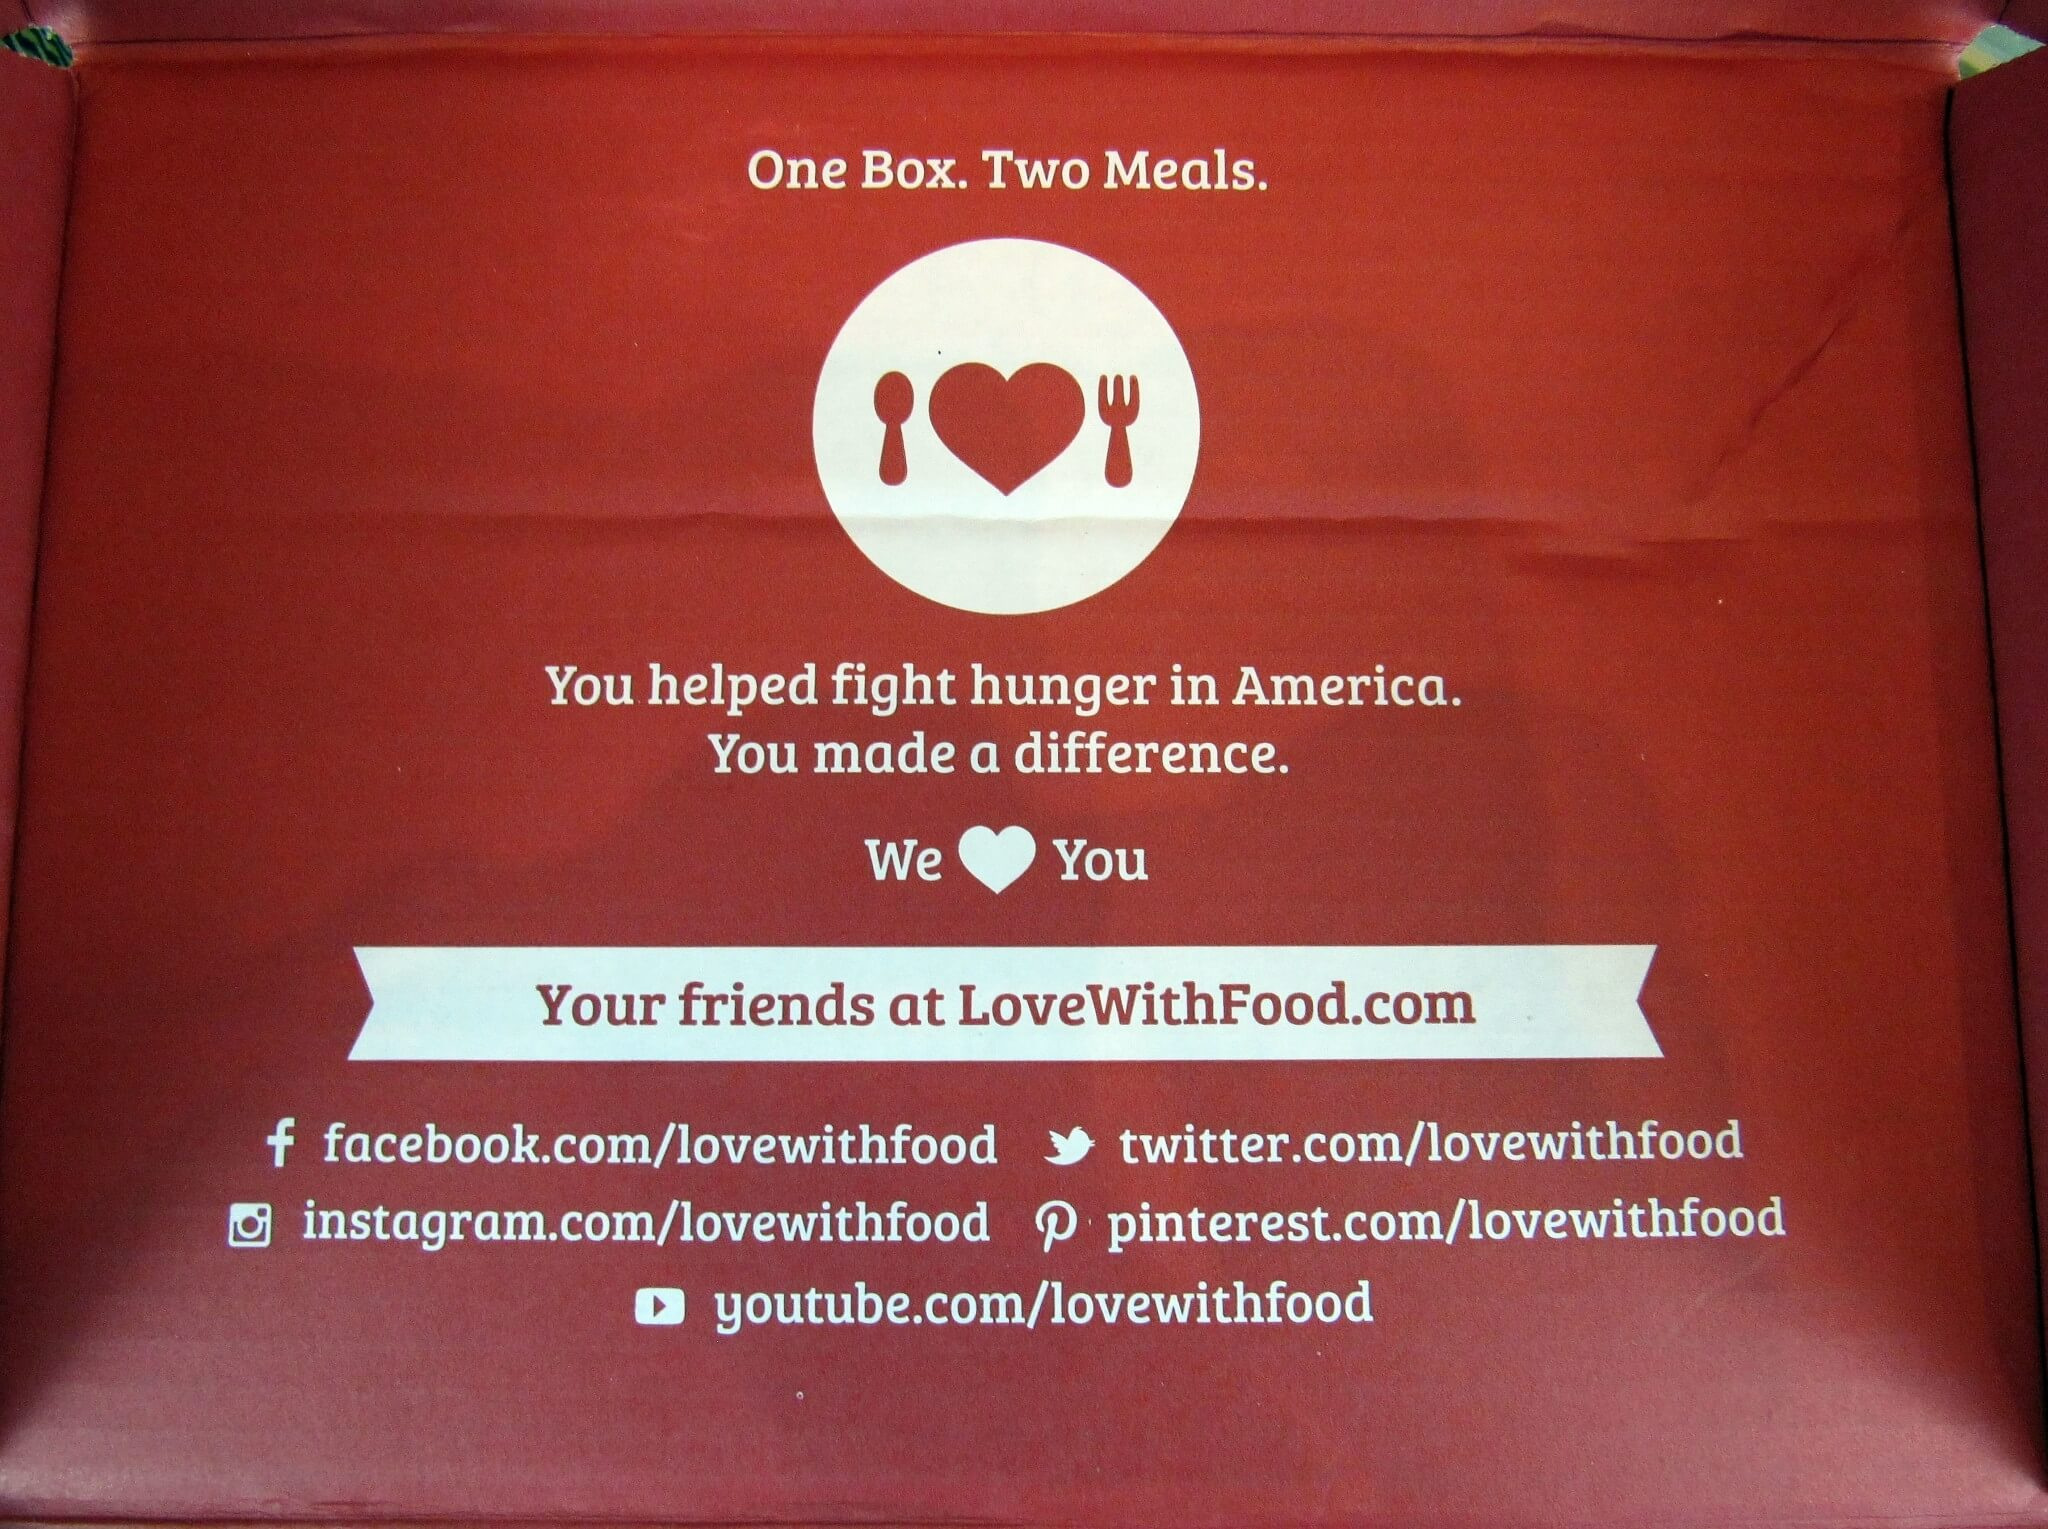 Love with Food donates meals!